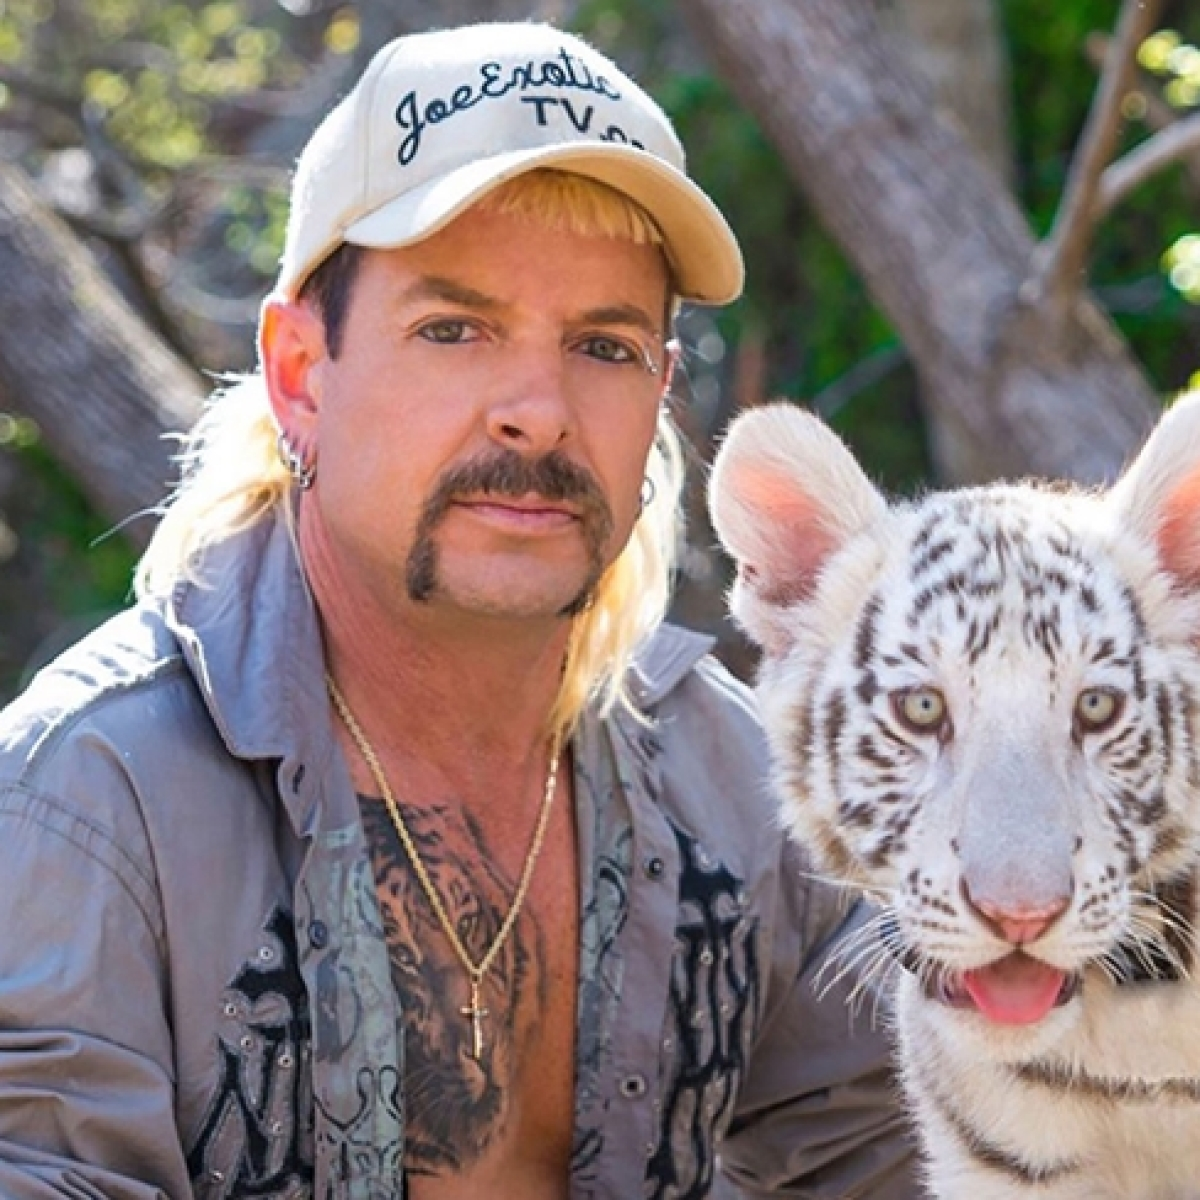 Netflix's 'Tiger King' star Joe Exotic tells fans he might 'be dead in 2 or 3 months'